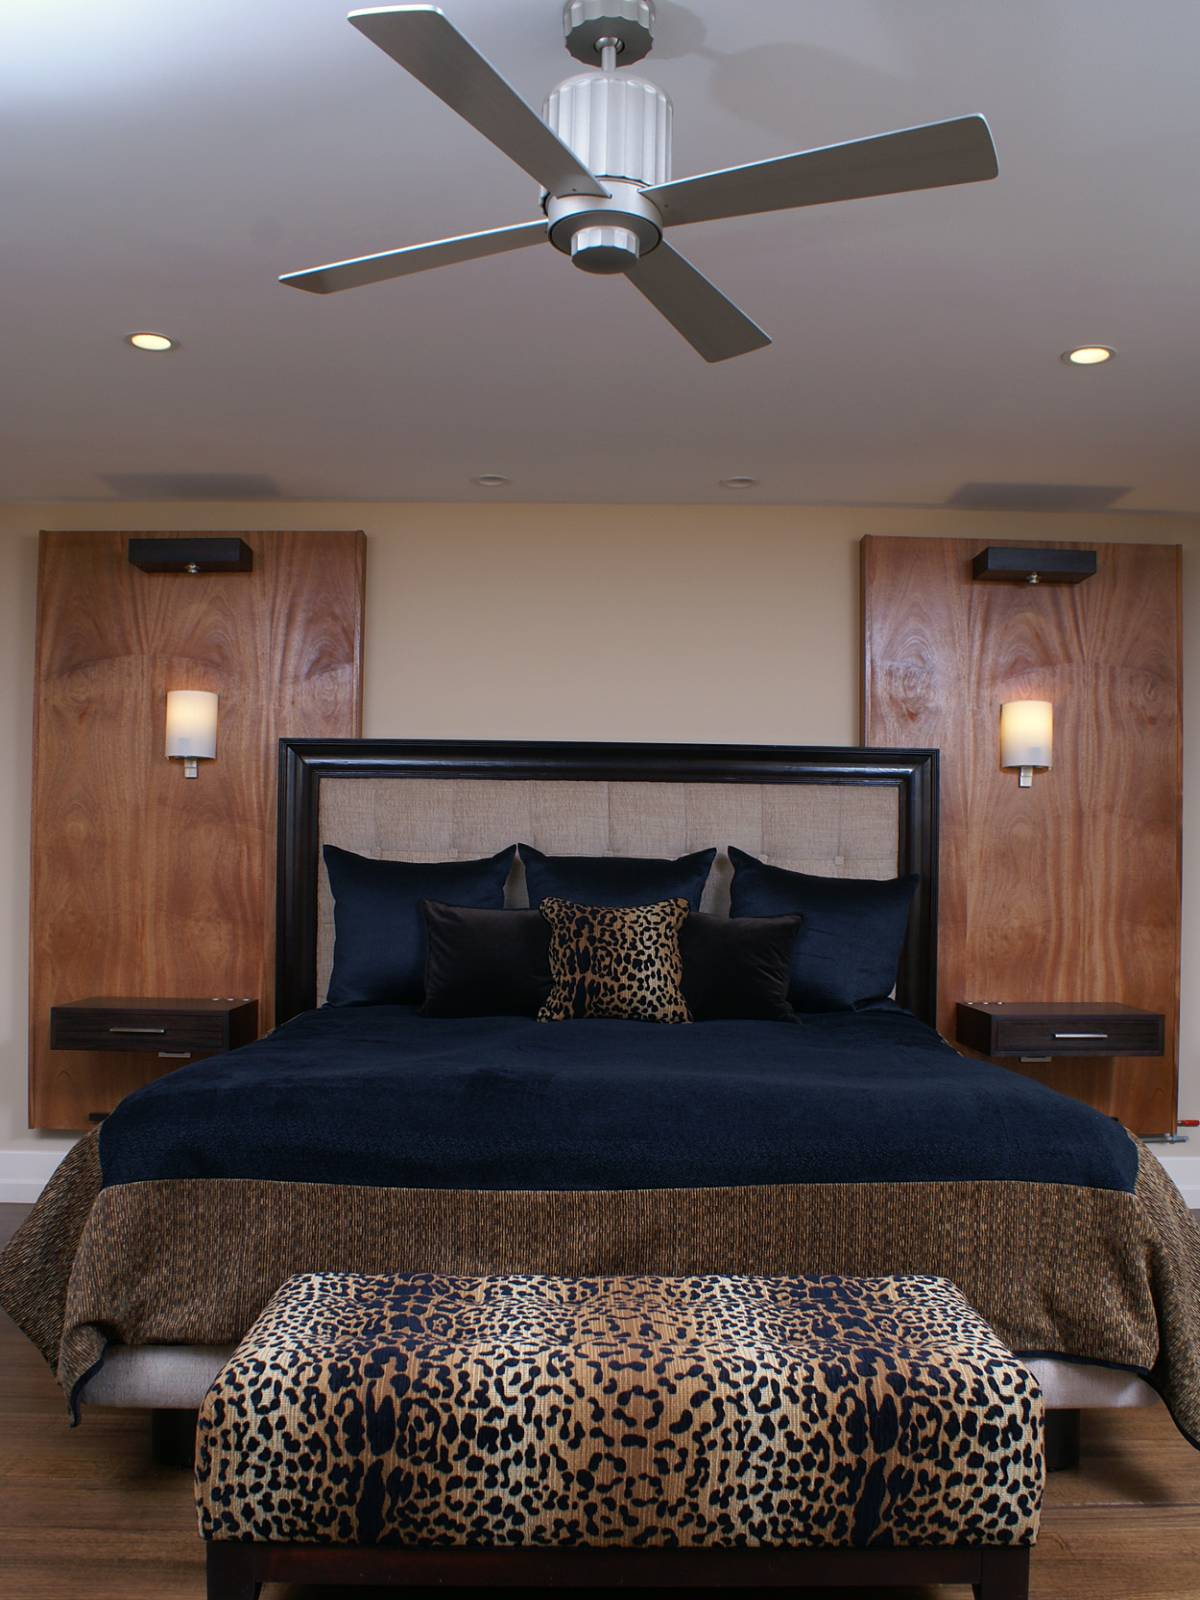 15 Lovely Bedroom Ideas With Leopard Accents Homedizz